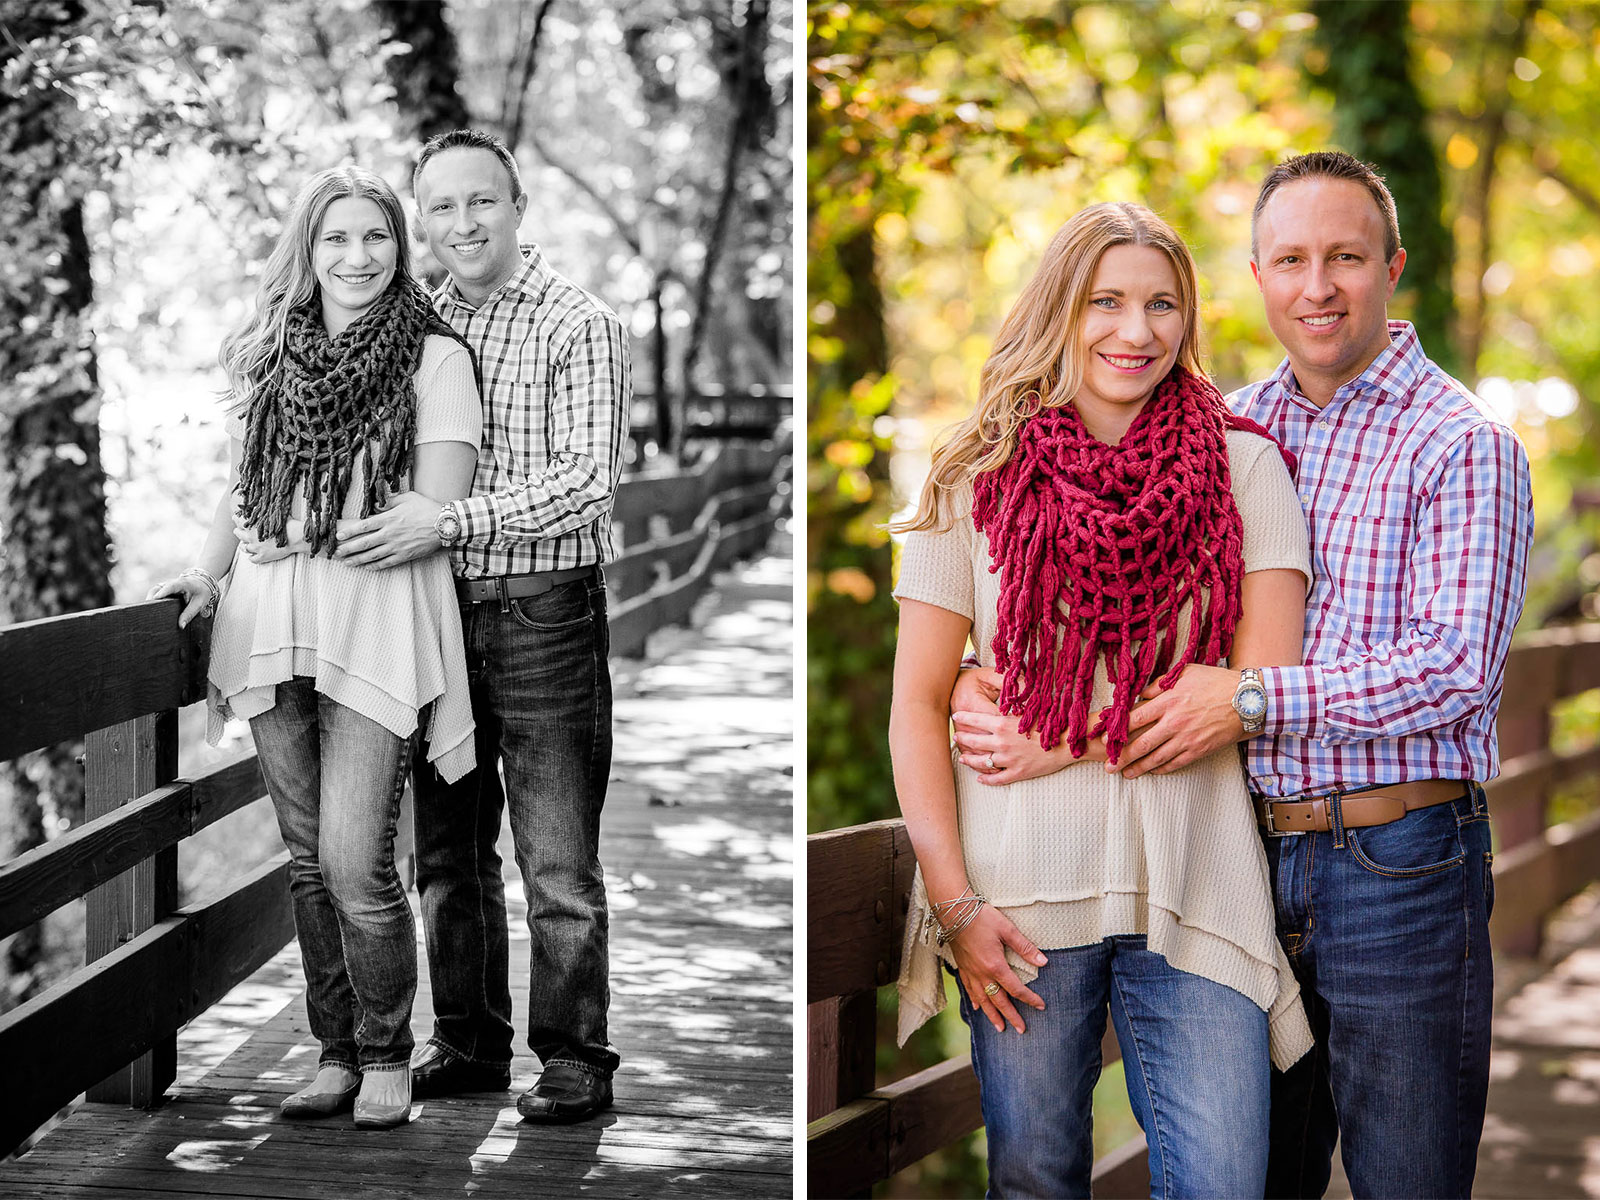 Eric_and_Christy_Photography_Blog_Megan_Nate_Engagement-4-5